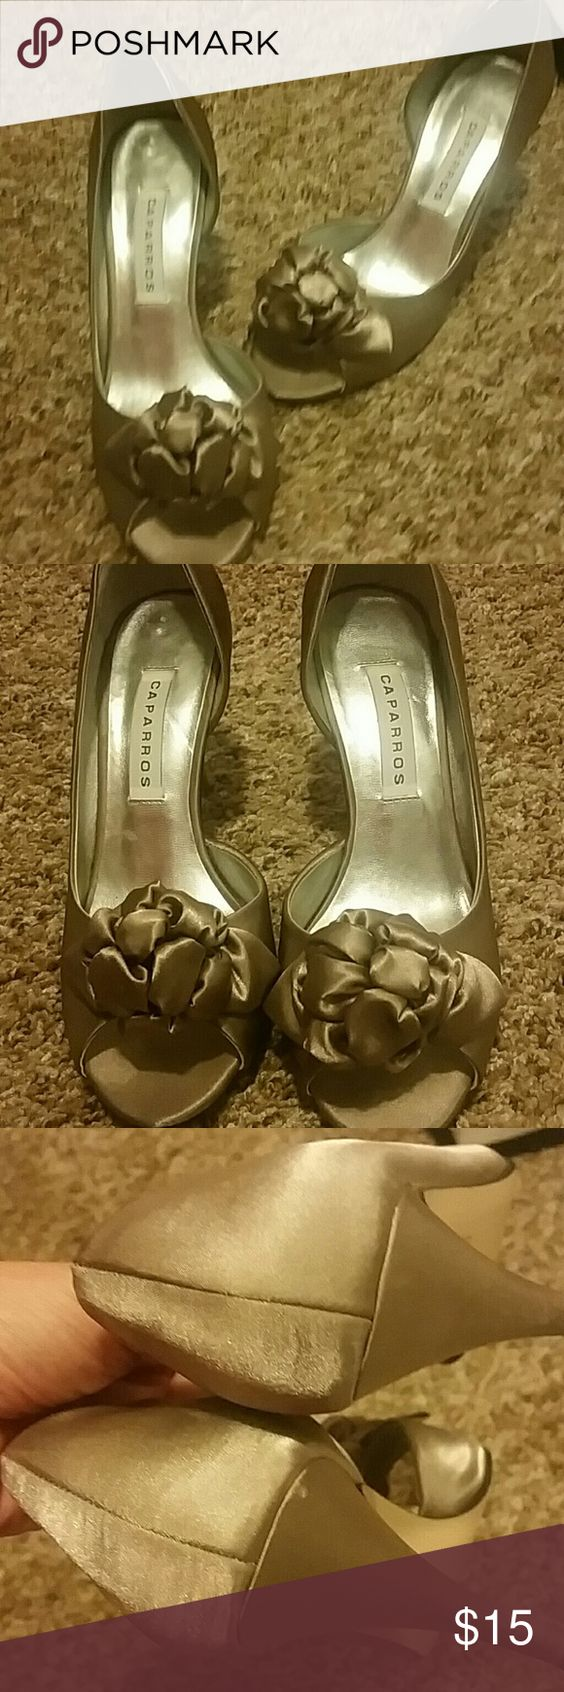 Cute Caparros heels Good used condition.  Perfect for a night out. Caparros Shoes Heels